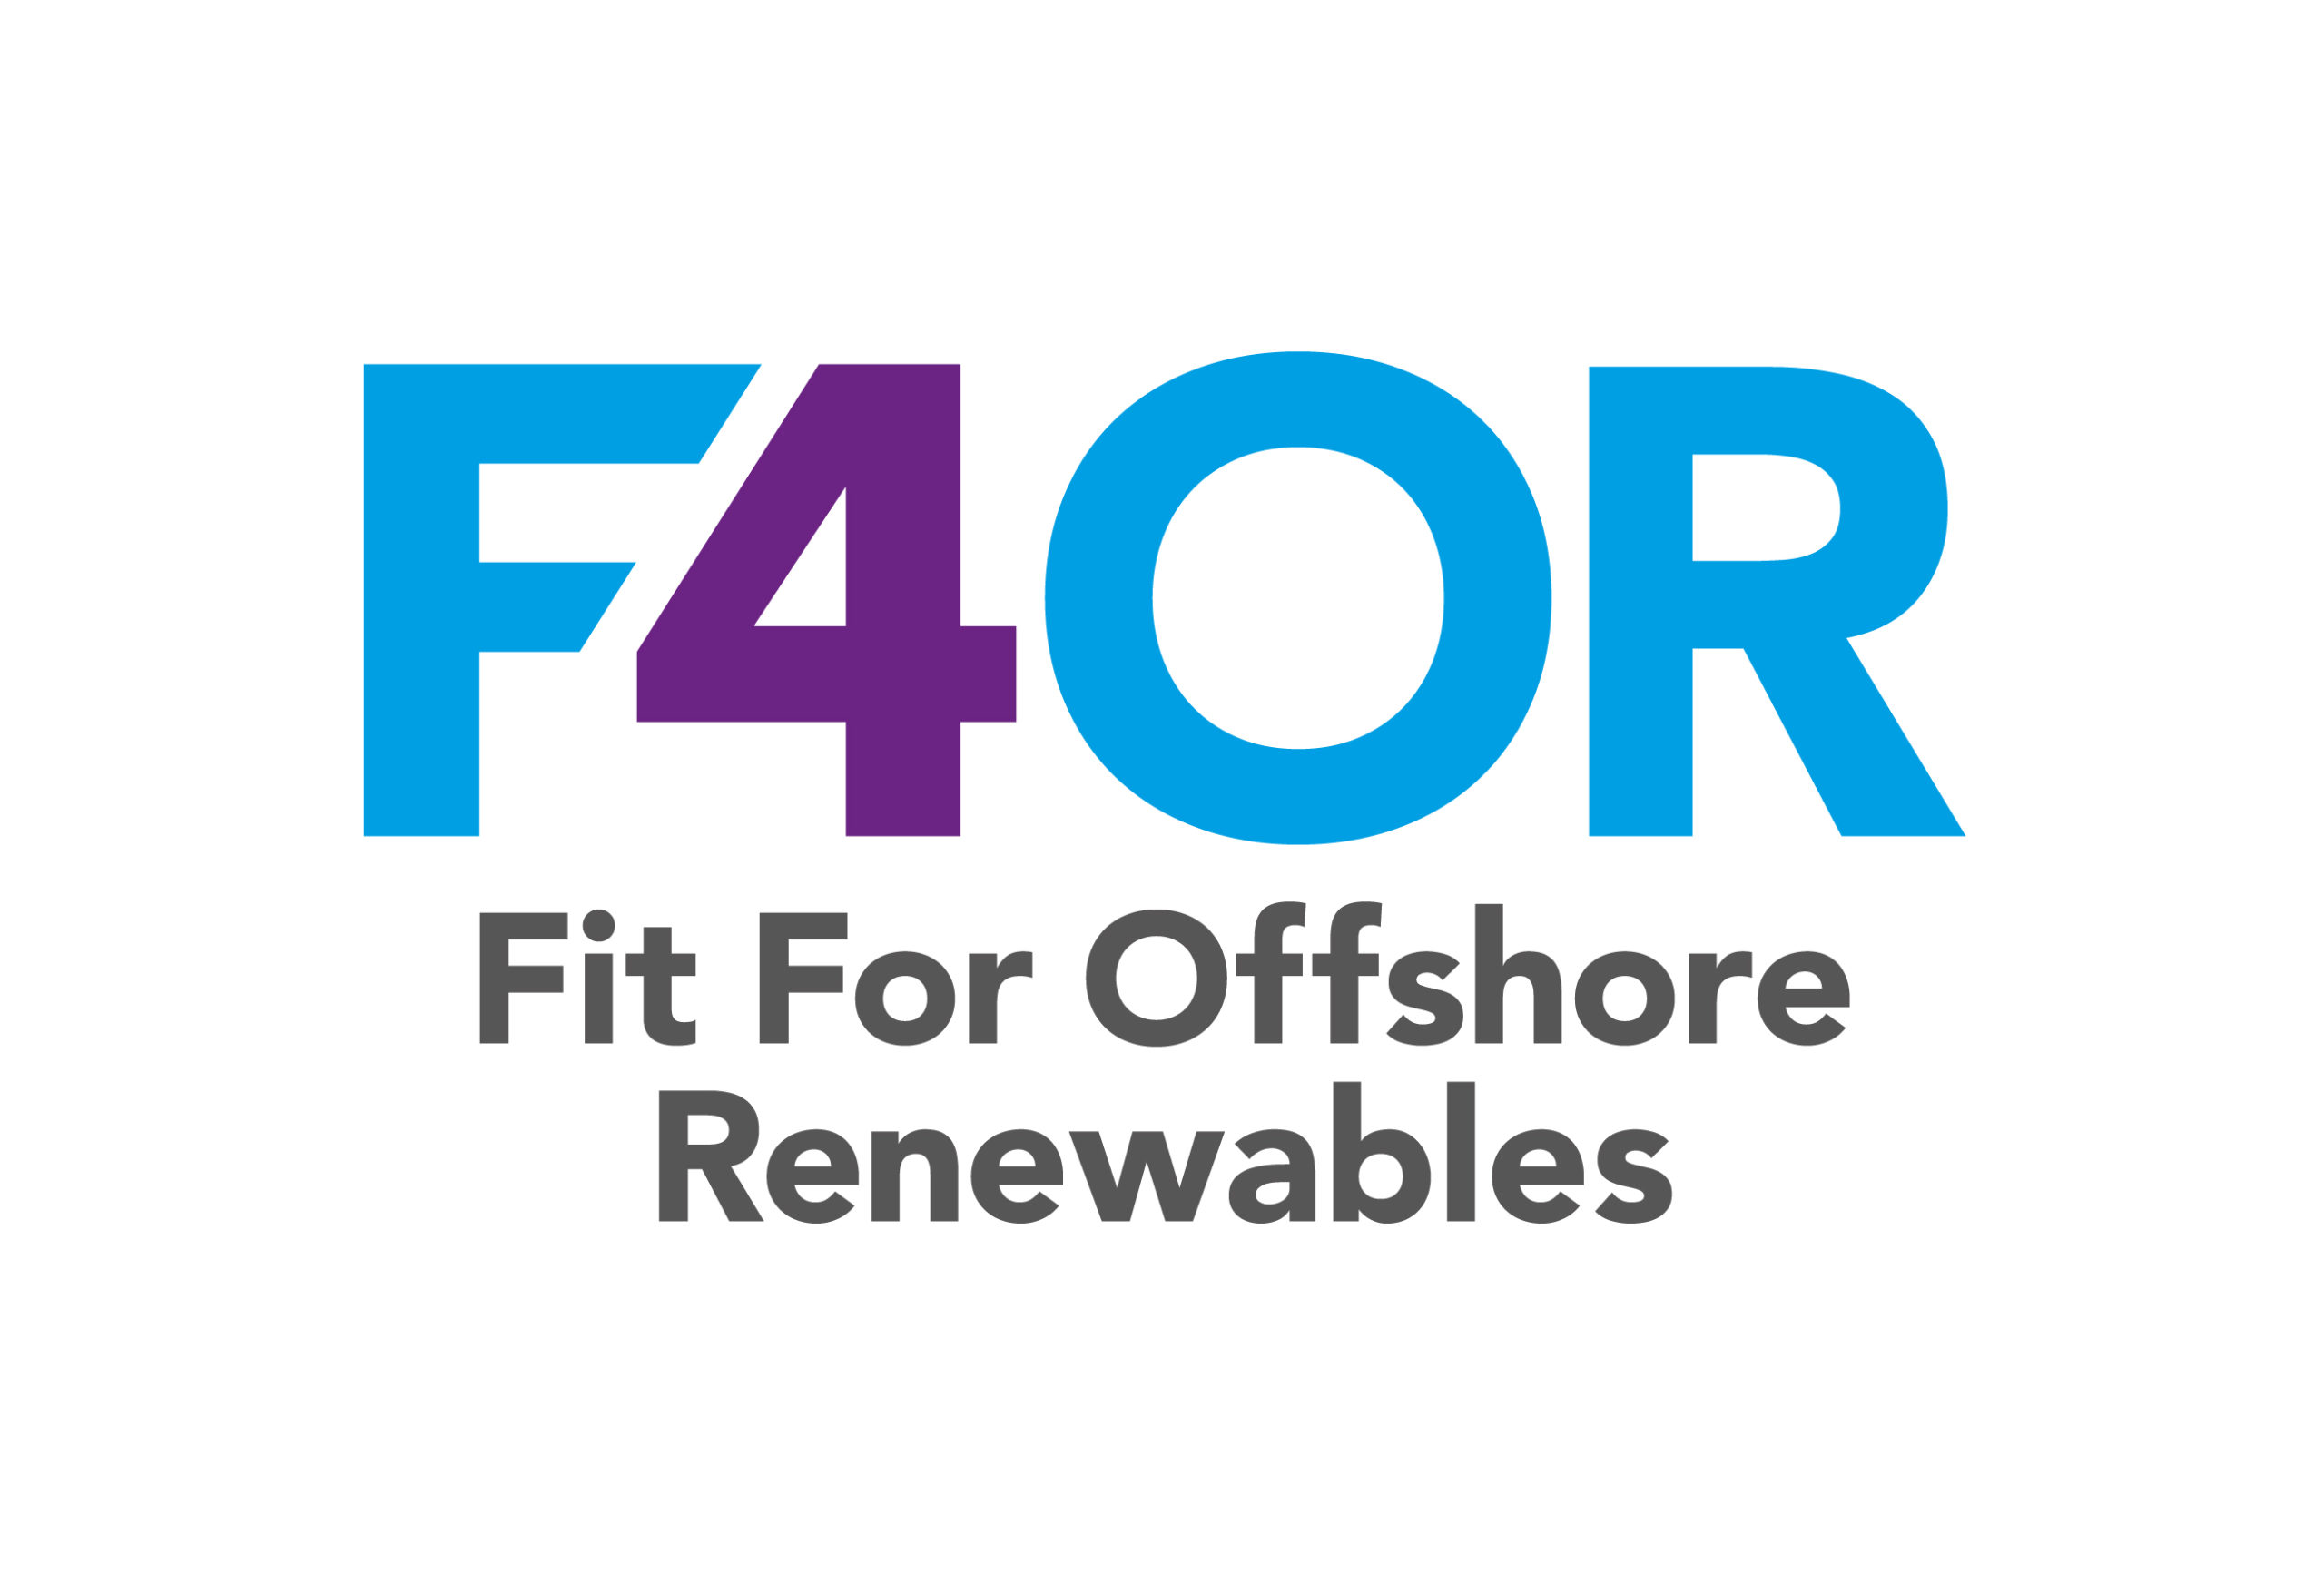 MEMBER NEWS: Apollo granted Fit for Offshore Renewables status